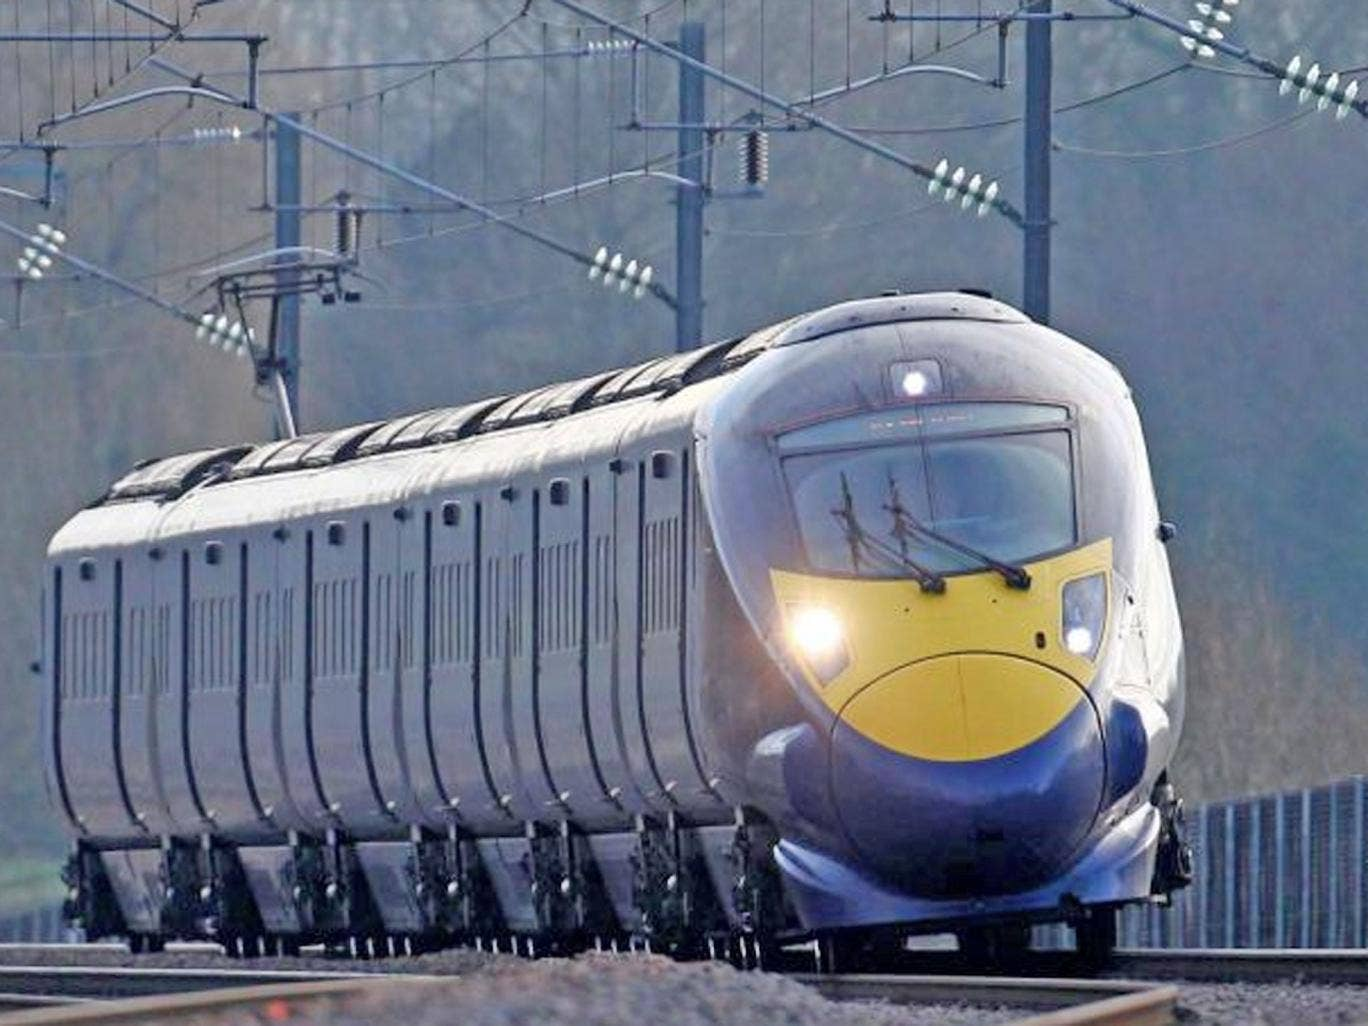 Details of the proposed route of the second phase of the HS2 high-speed rail network – from Birmingham to Manchester and Leeds – were released today